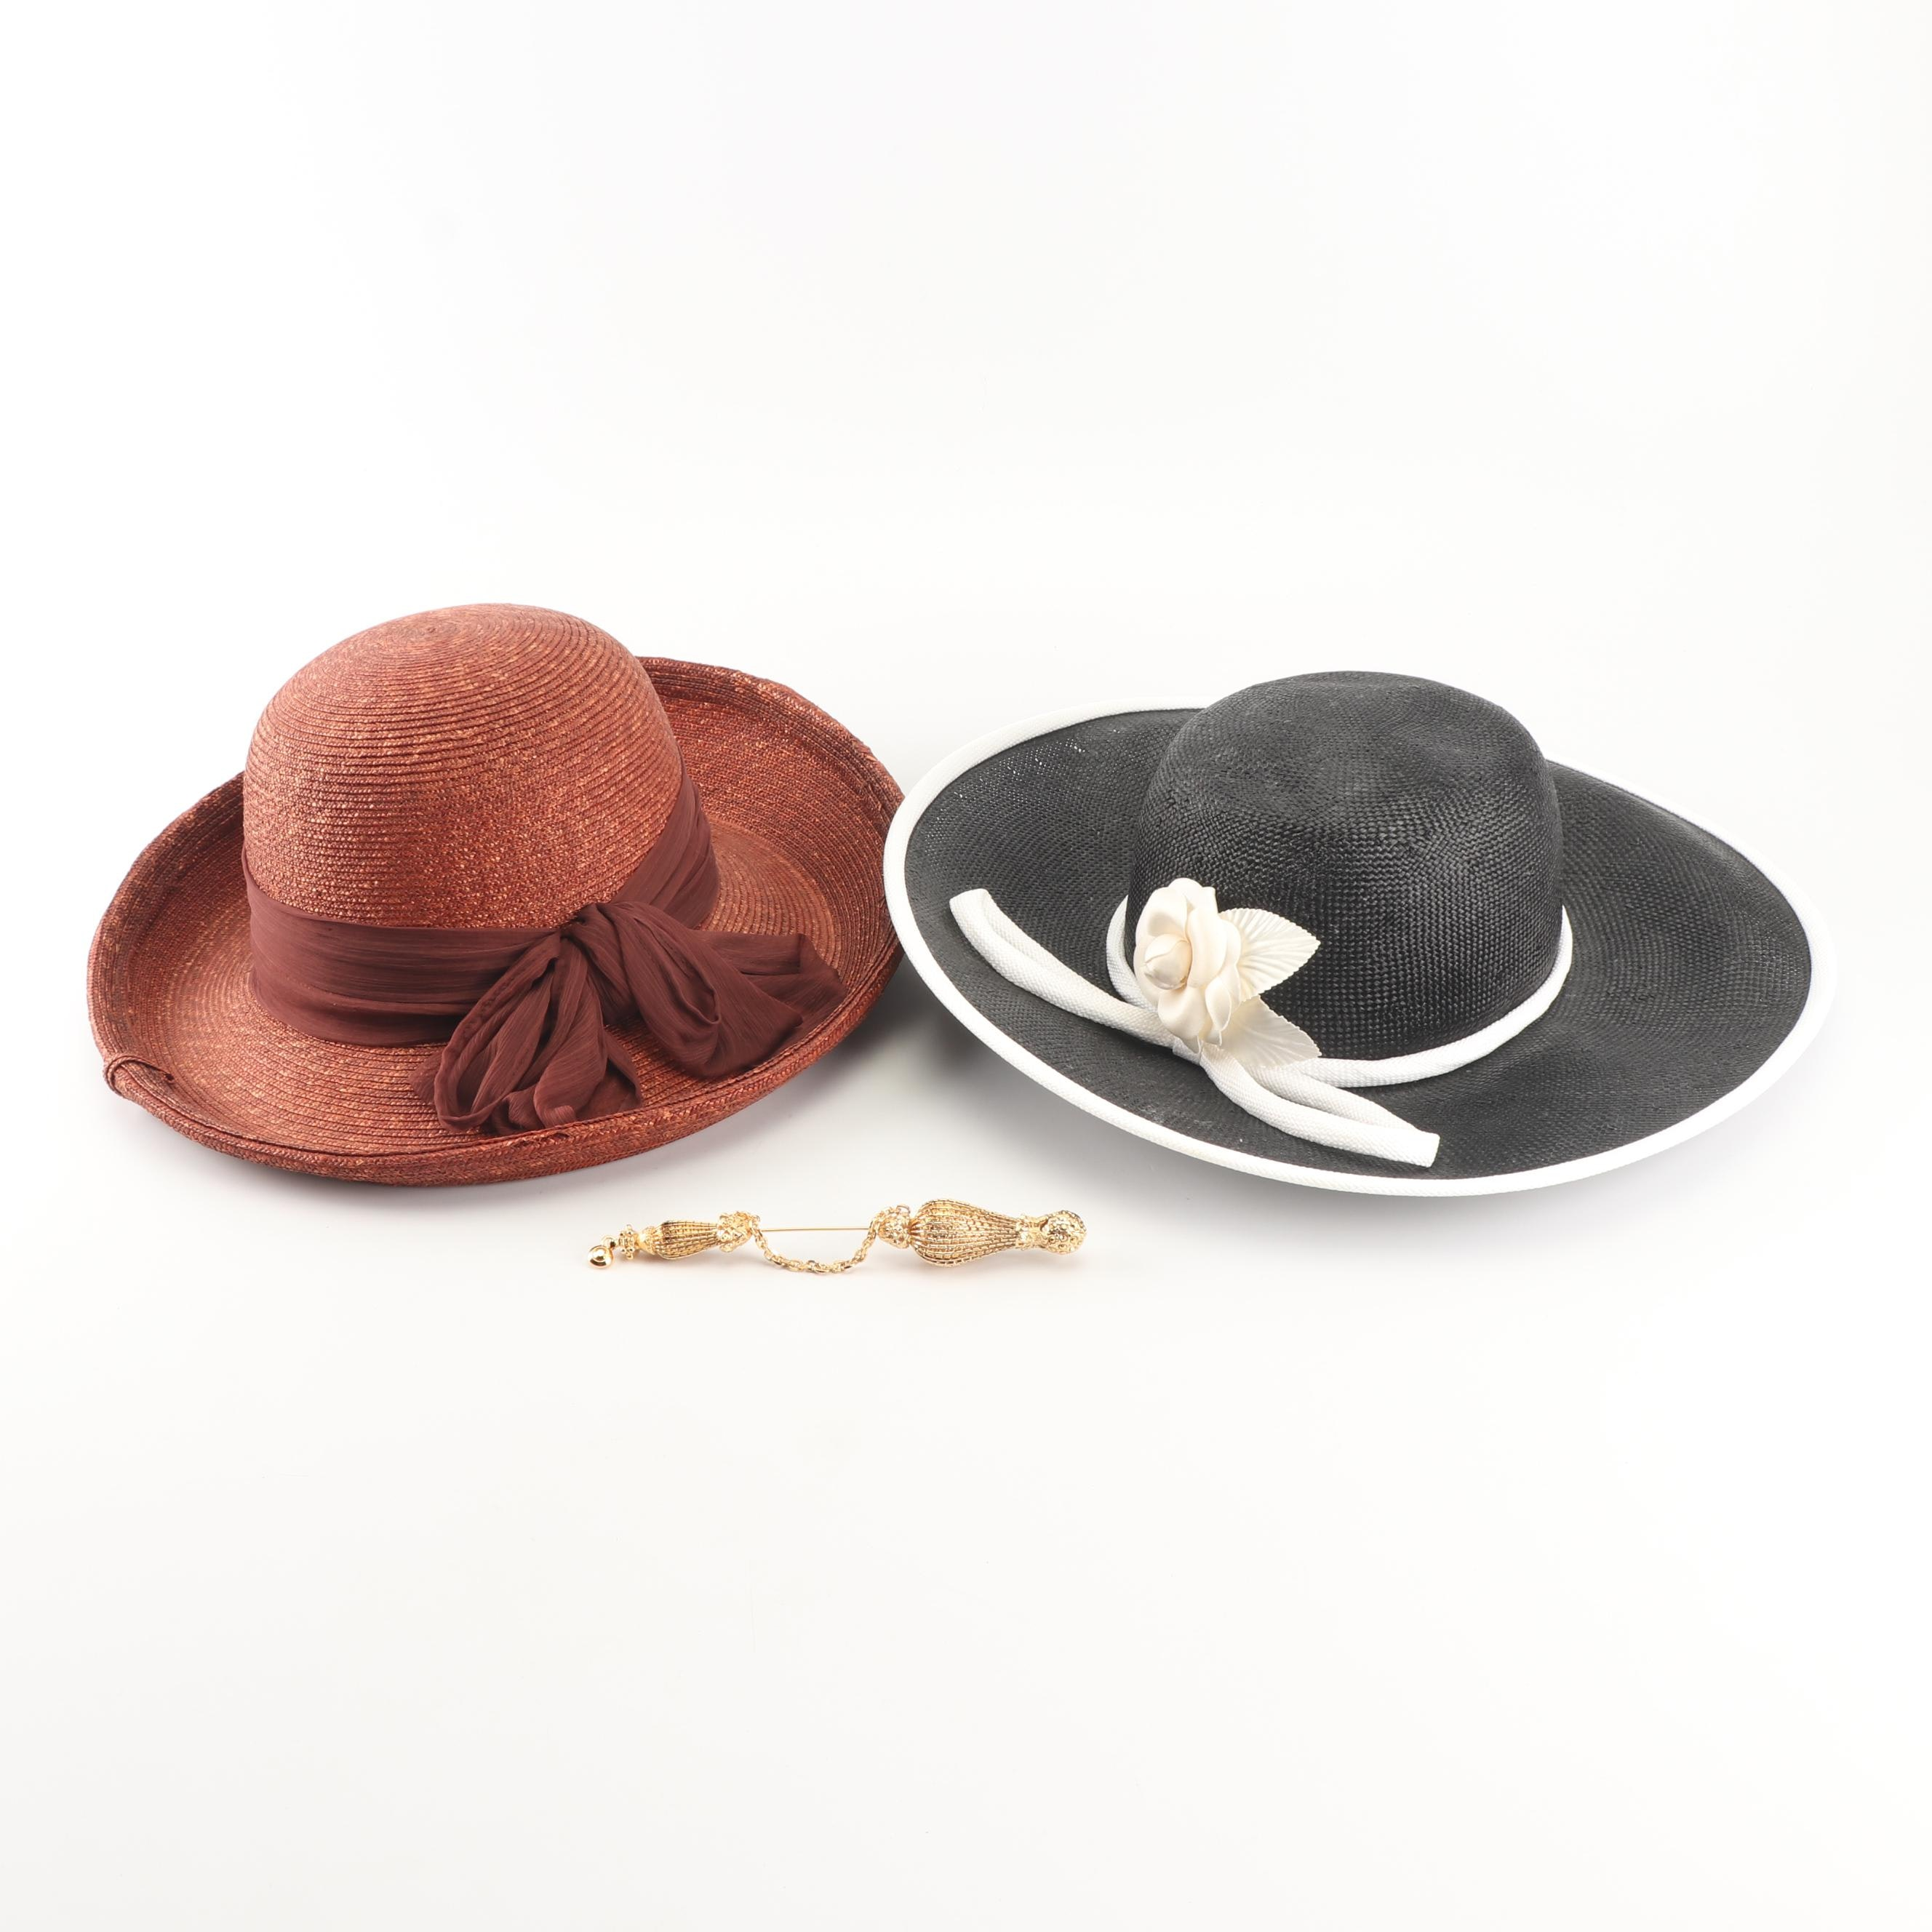 Saks Fifth Avenue Woven Breton and Wide Brimmed Hats with Gold Tone Stick Pin